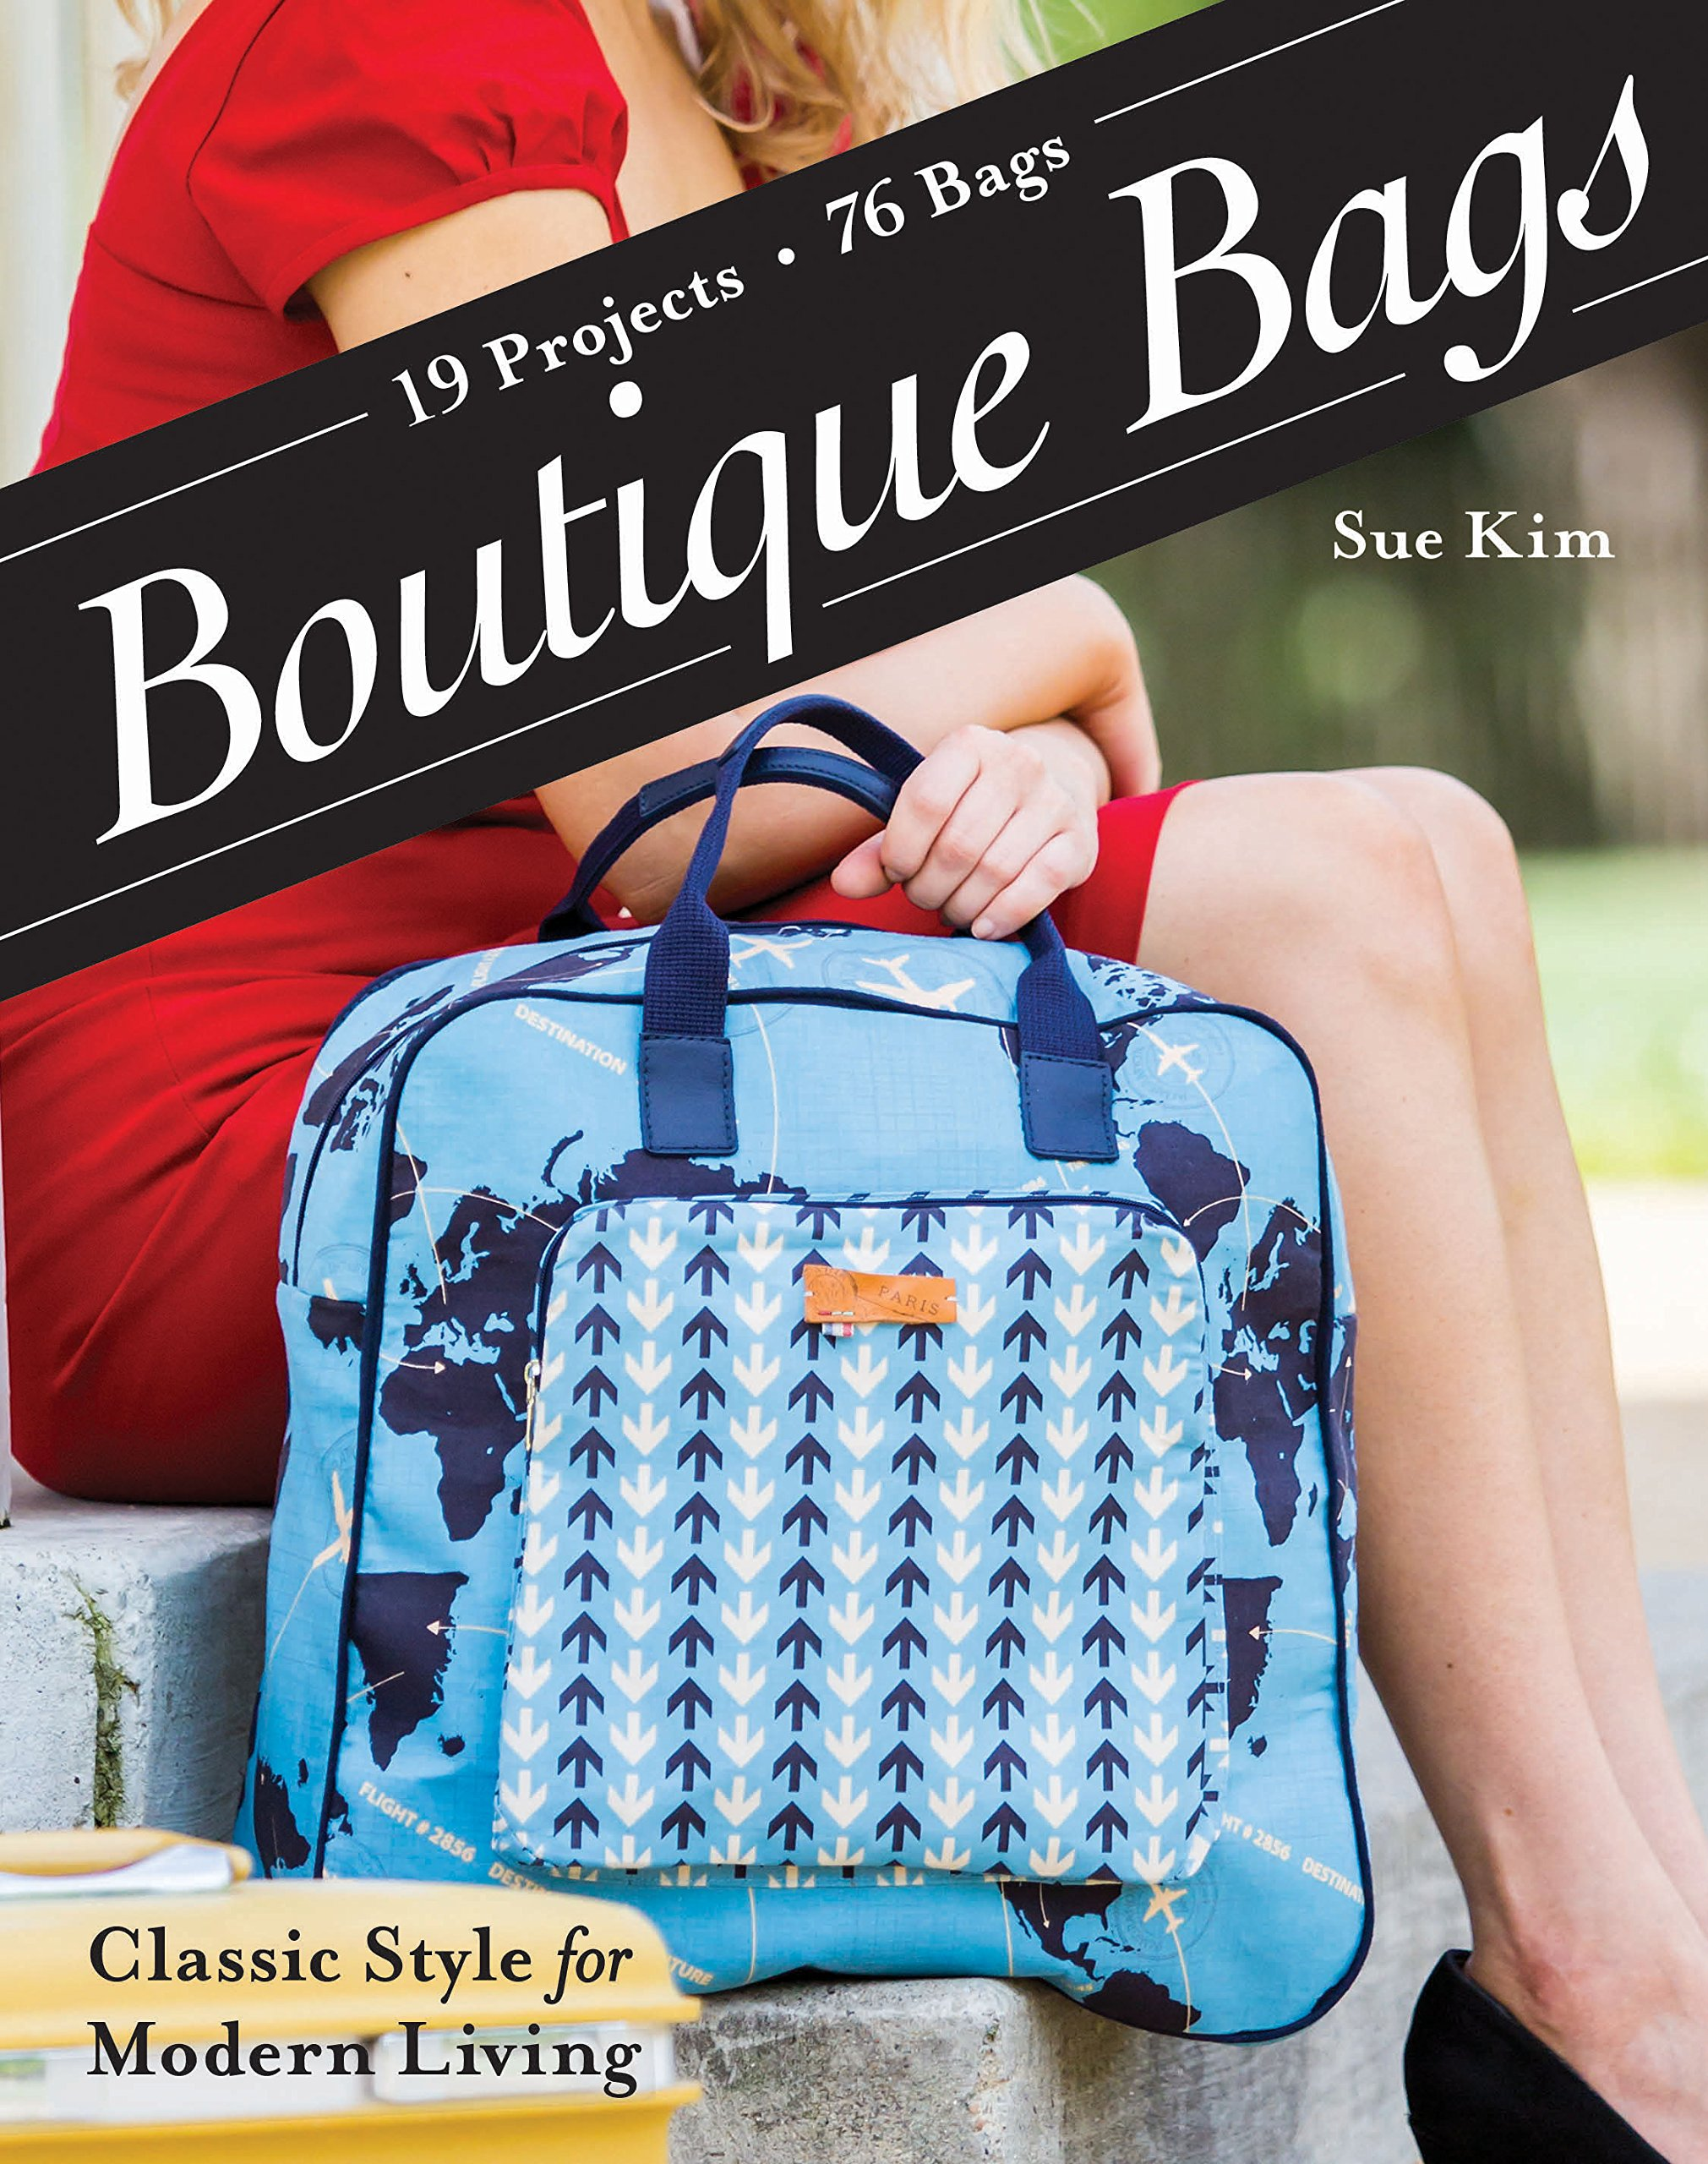 Boutique Bags: • Classic Style for Modern Living • 19 Projects 76 Bags: Sue  Kim: 9781607059851: Amazon.com: Books